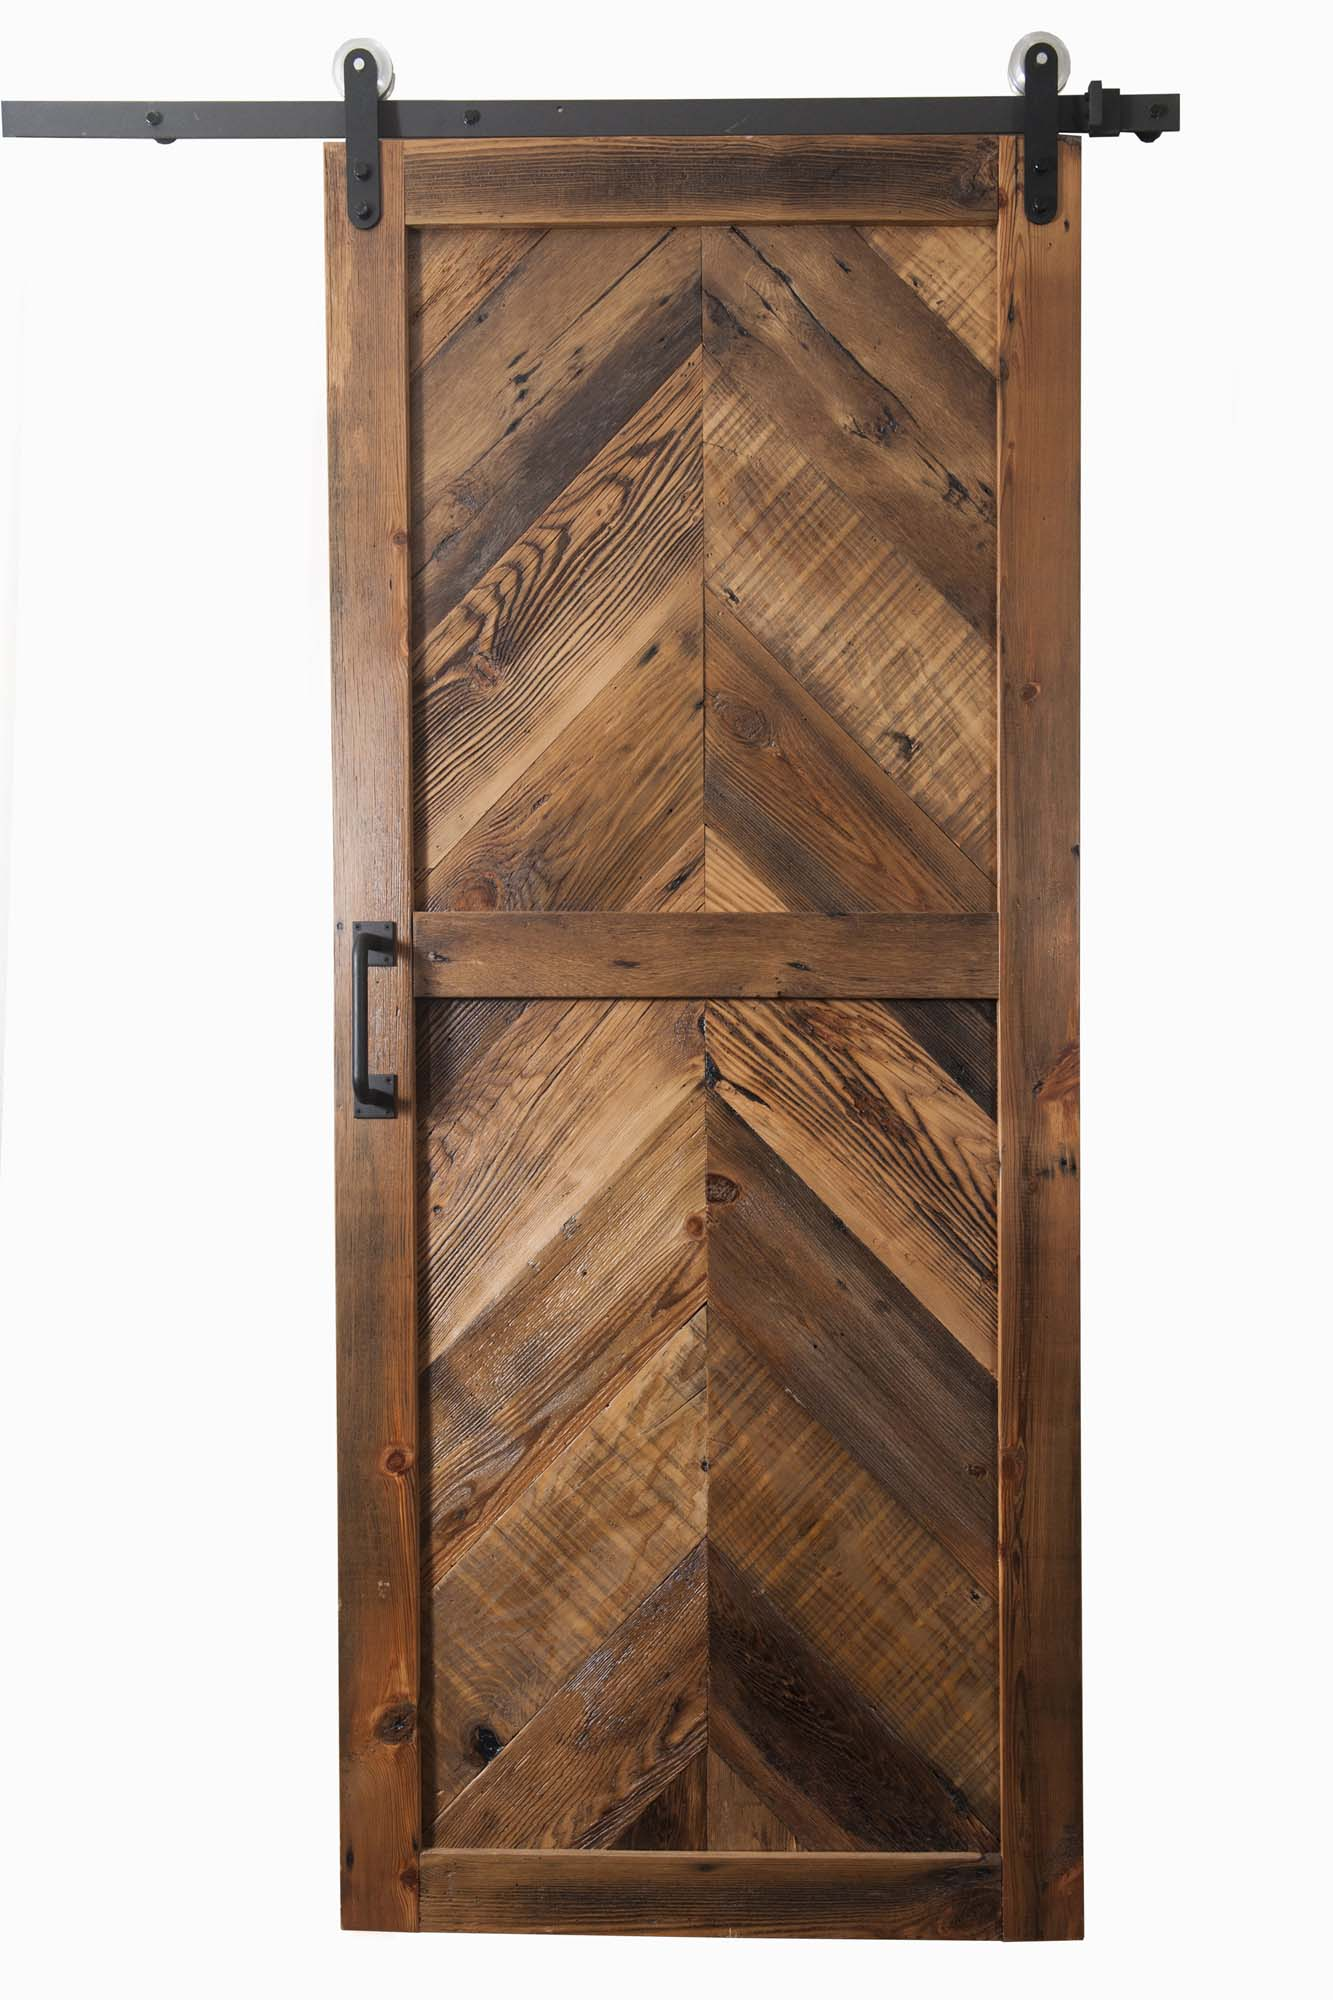 The Chevron Barn Door Buffalo Barn Doors